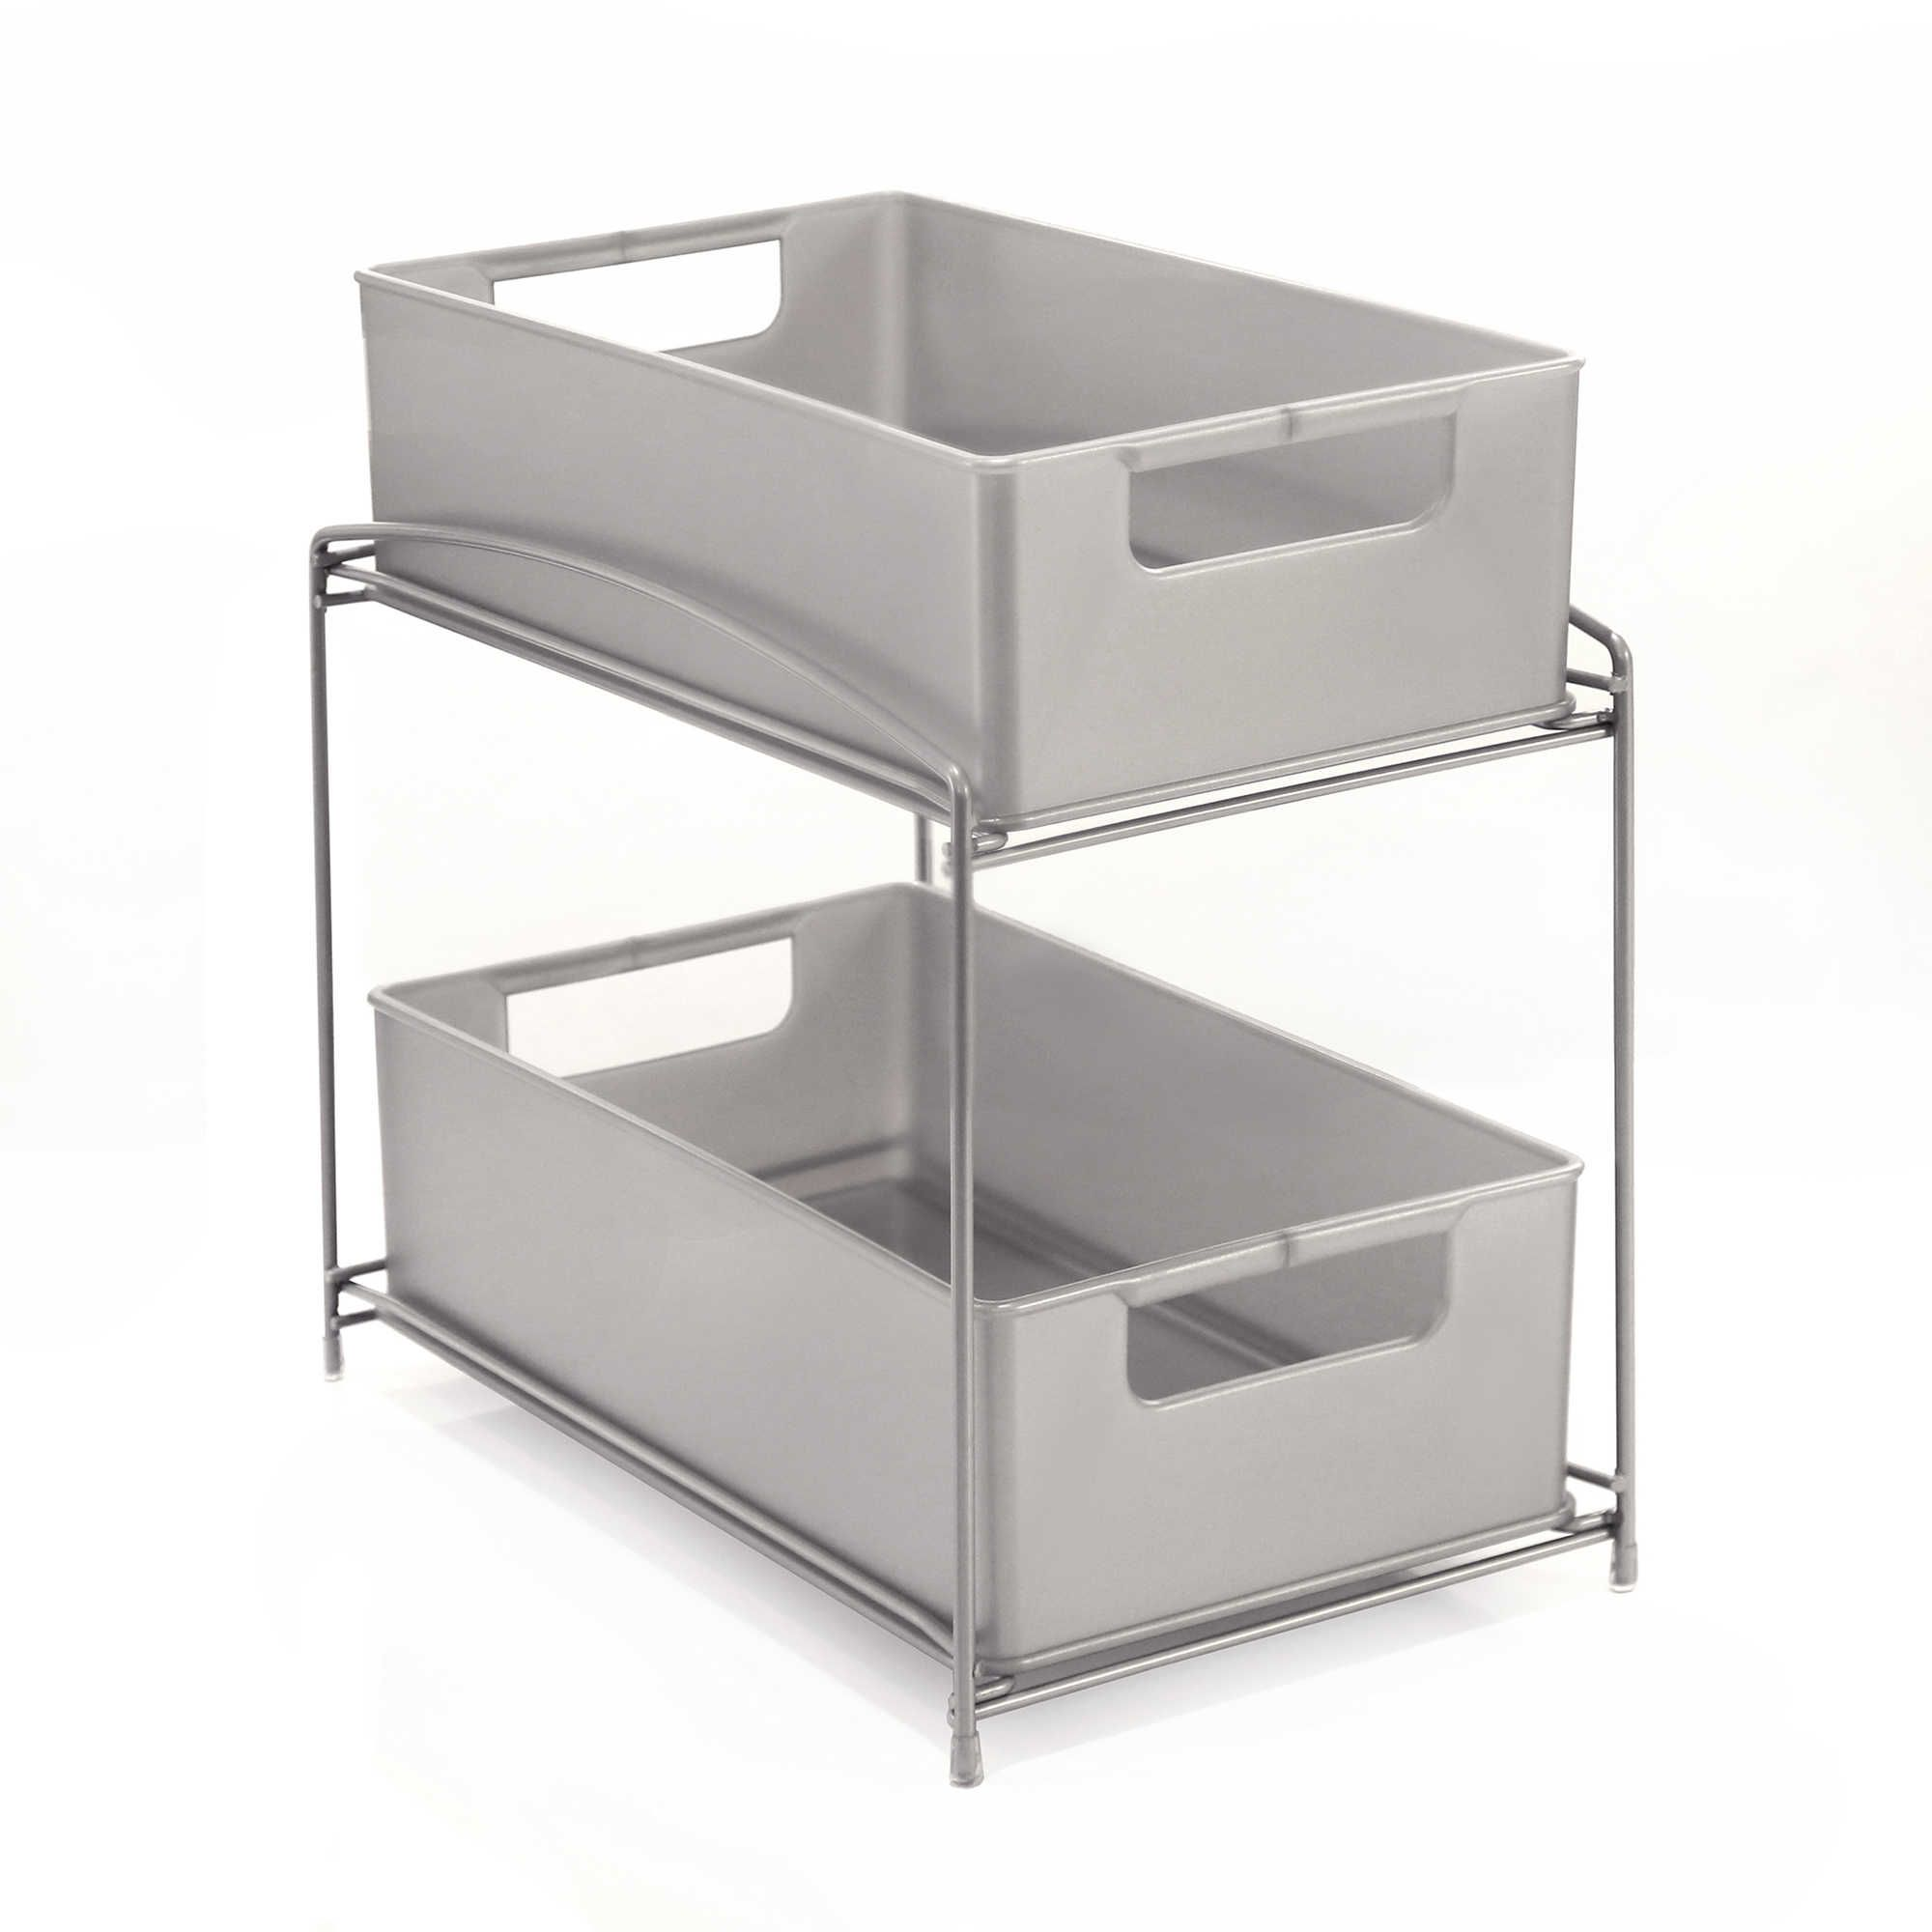 Uncategorized Sliding Basket Organizer two tier sliding under sink basket organizer 19 99 sku 17365142 17365142